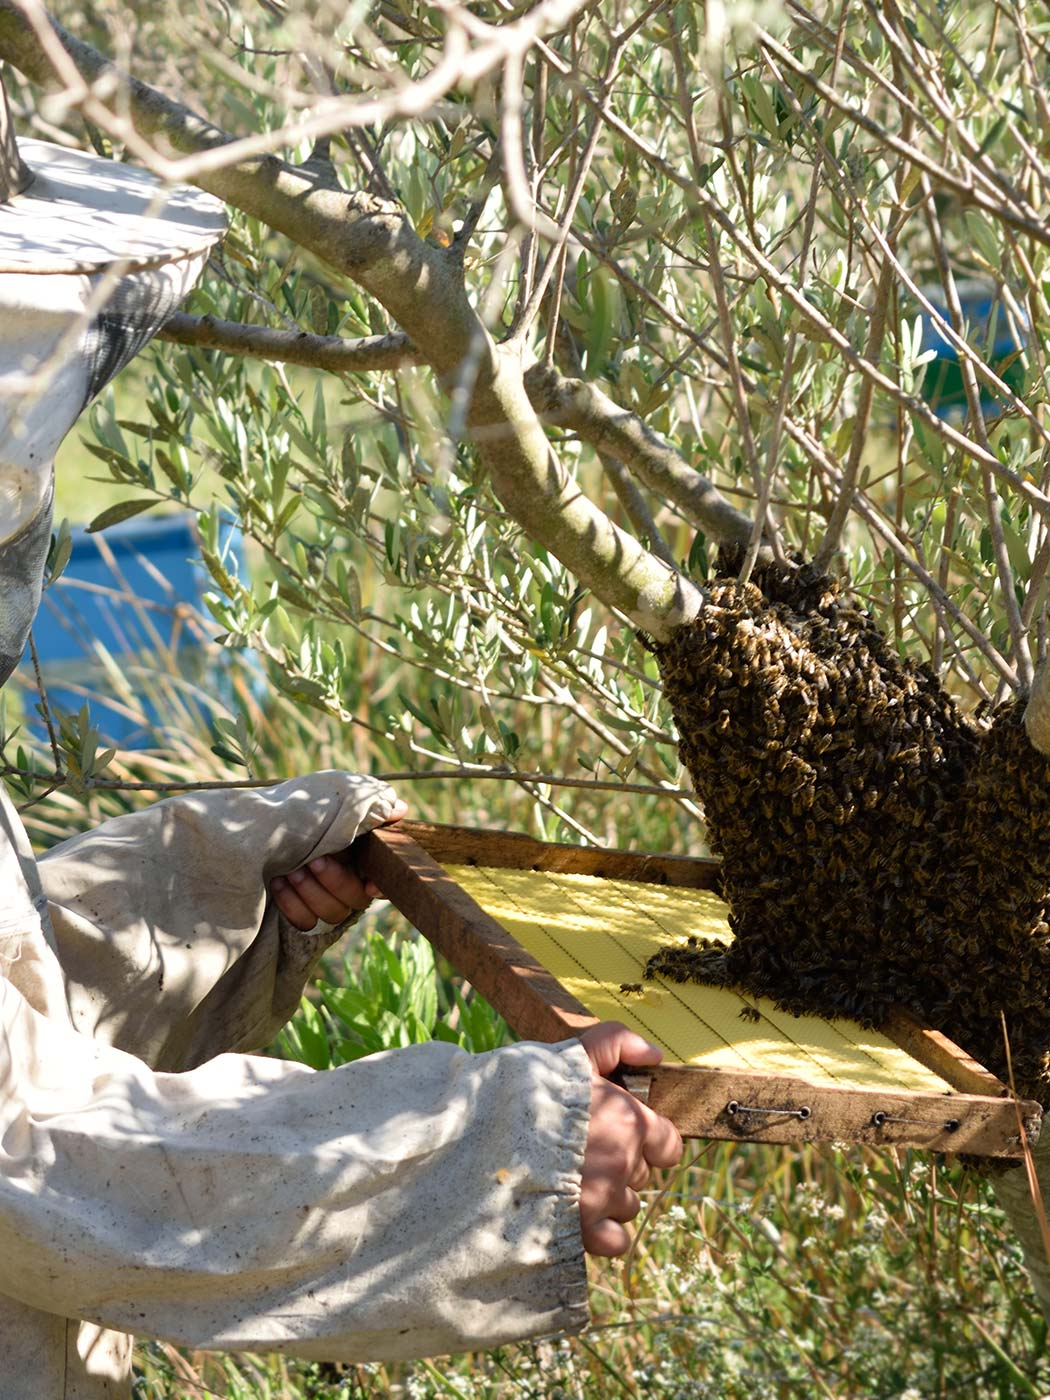 Bioporos Organic Farm beekeeping activities